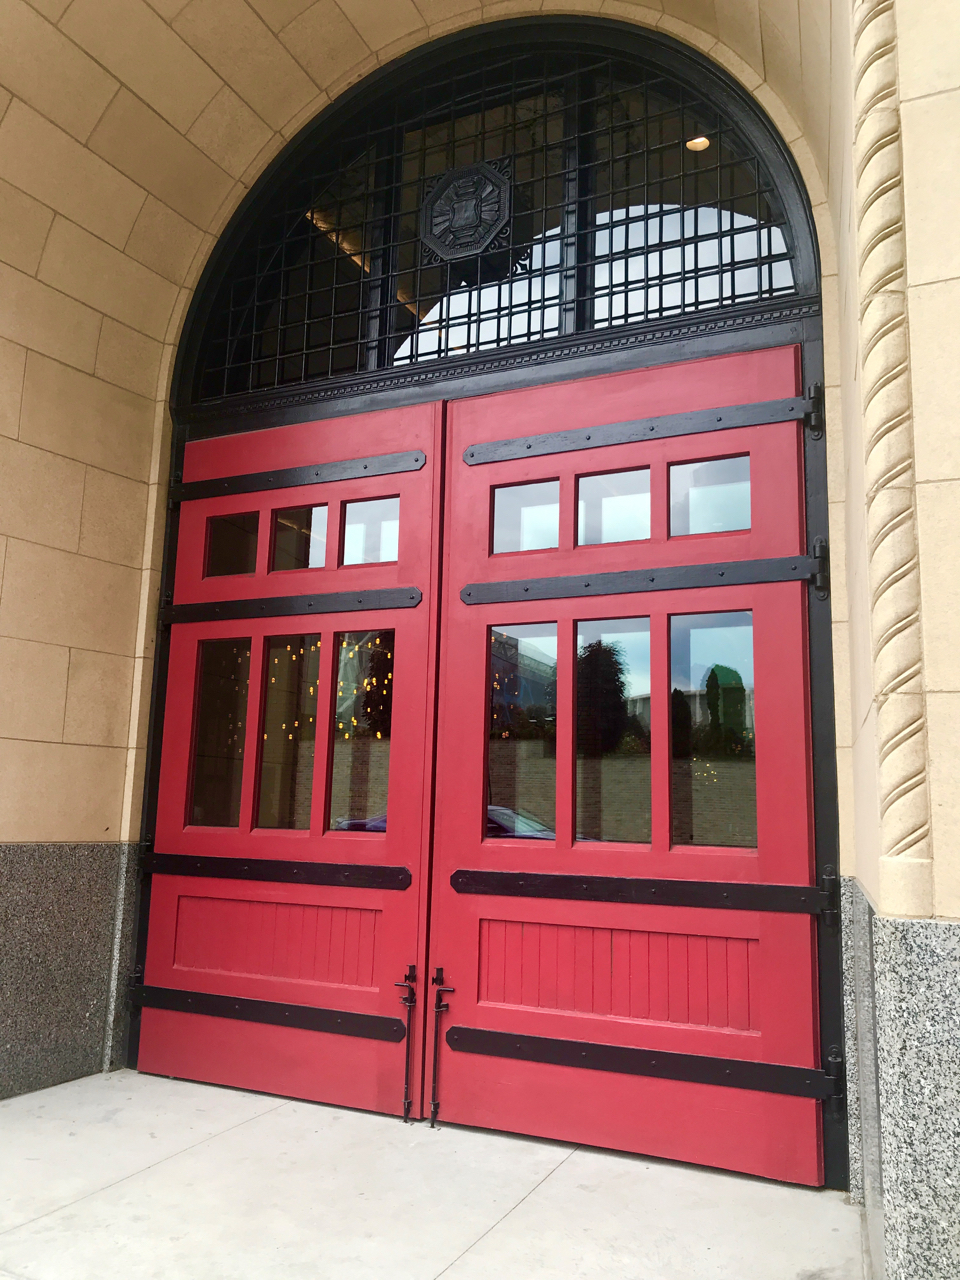 A Once Fire Station has been transformed into the Foundation Hotel